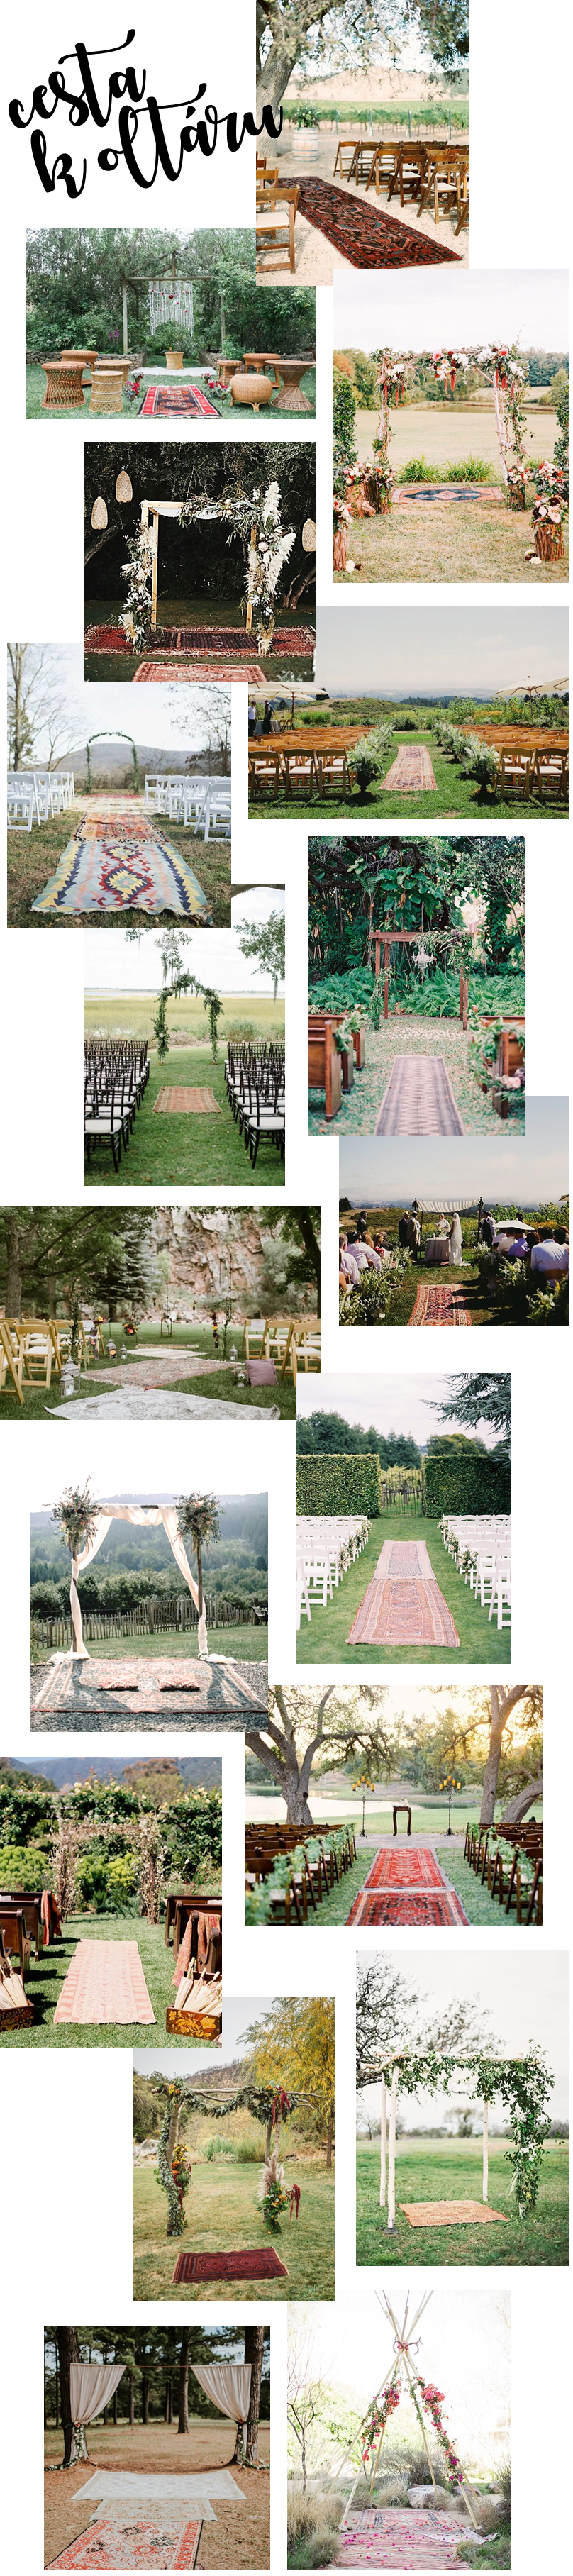 aisle collage 1